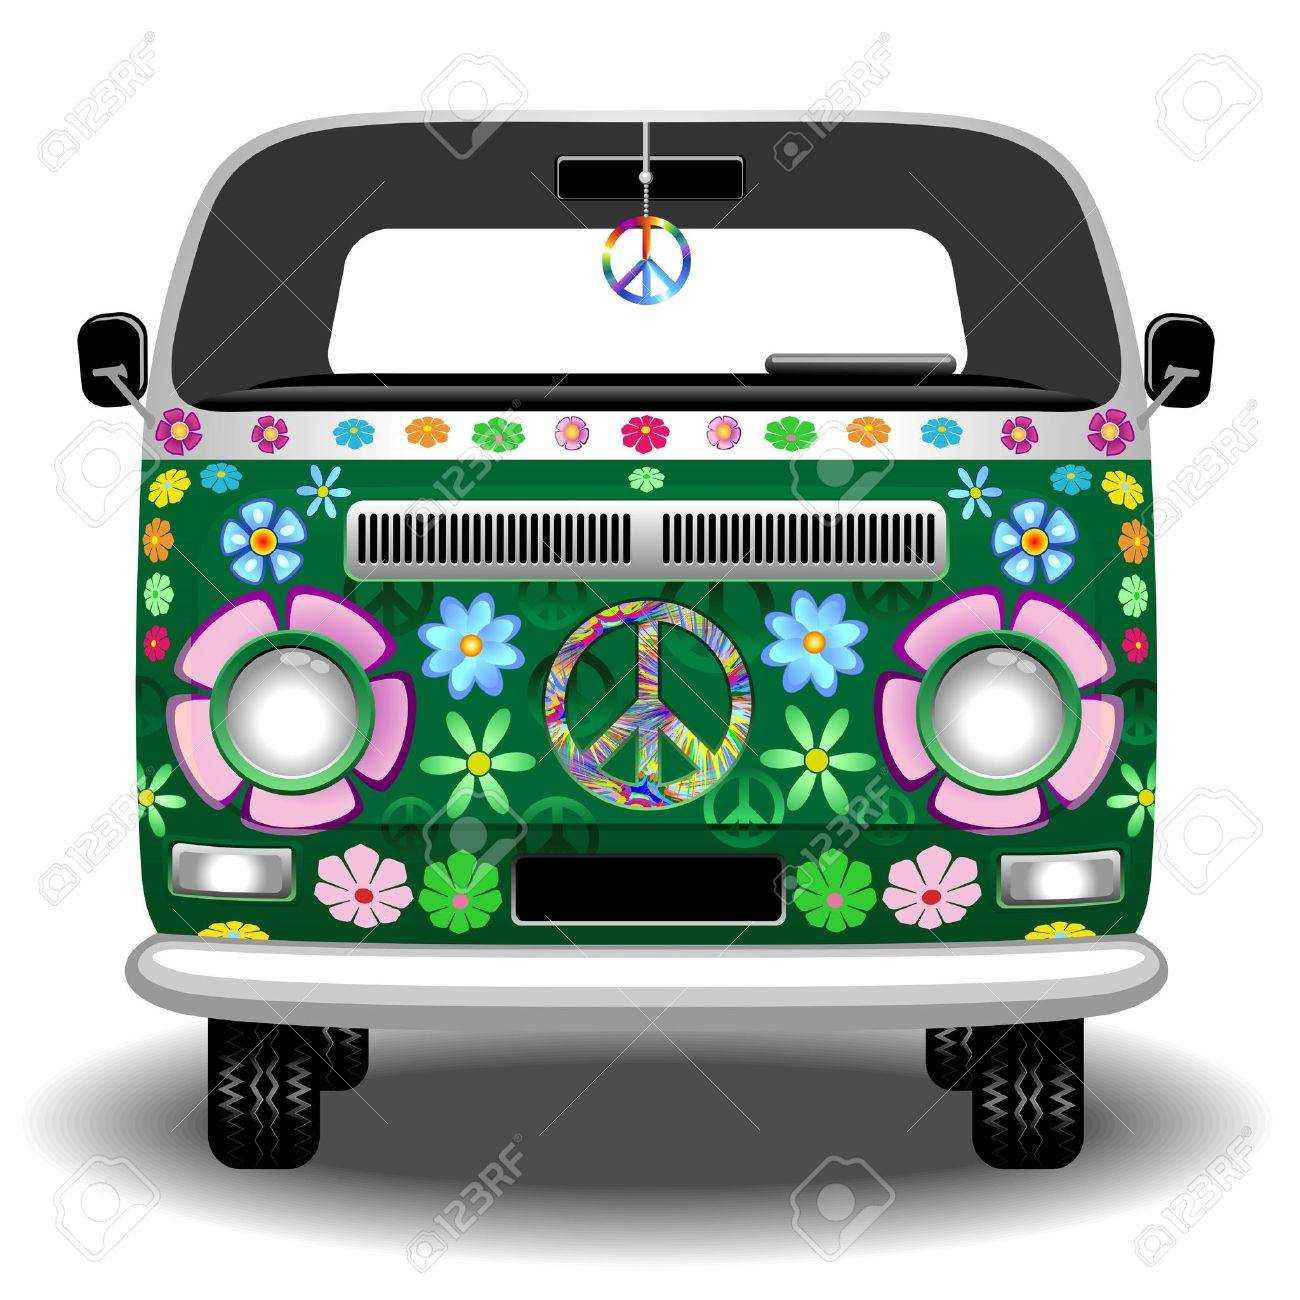 Hippie Groovy Van Peace and Love Stock Vector - 37161656